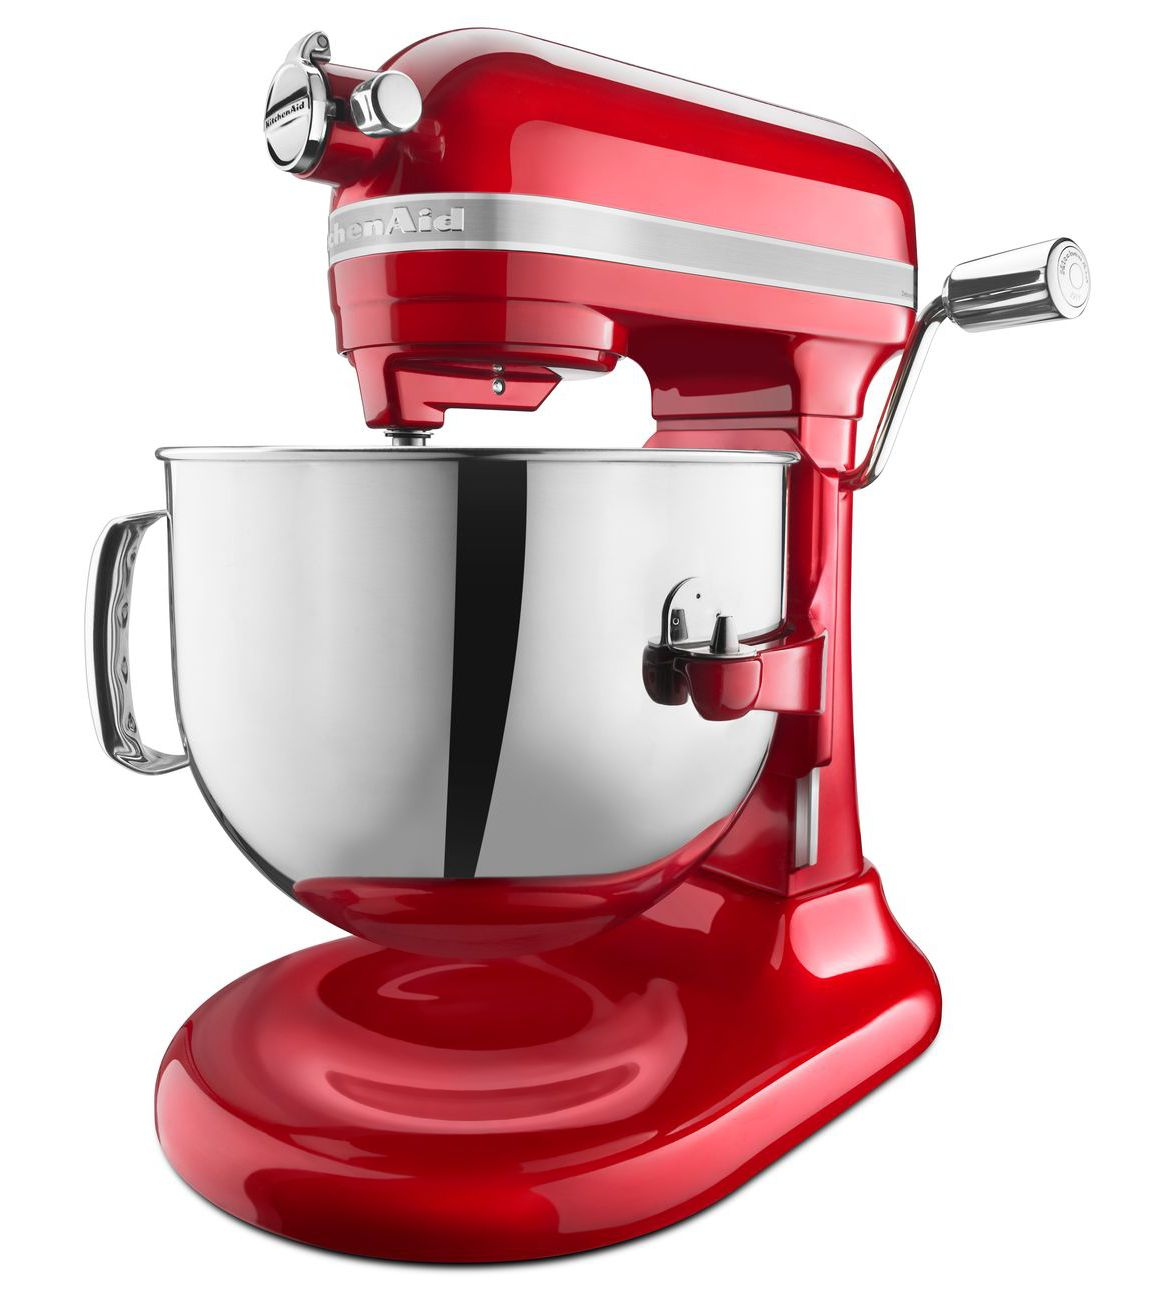 KitchenAid Pro Line Series 7-Quart Stand Mixer | CANFAR